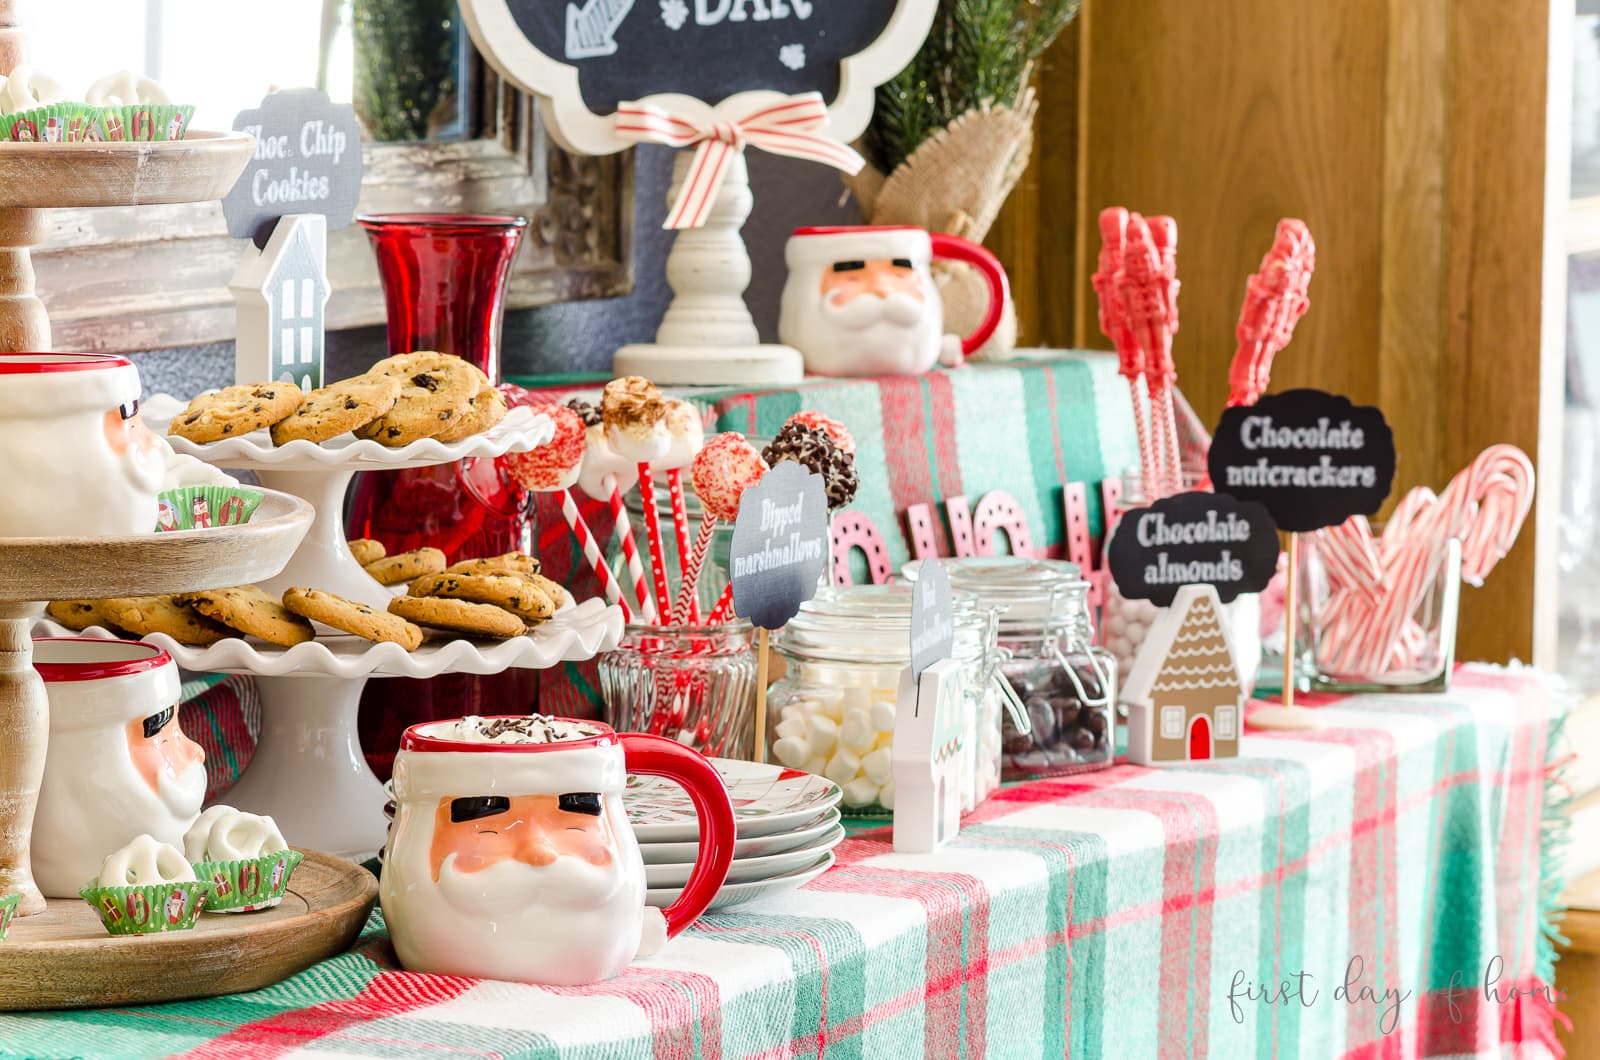 Hot cocoa bar decor including Santa mugs, sweets, chocolates, candy canes and chalkboard signs